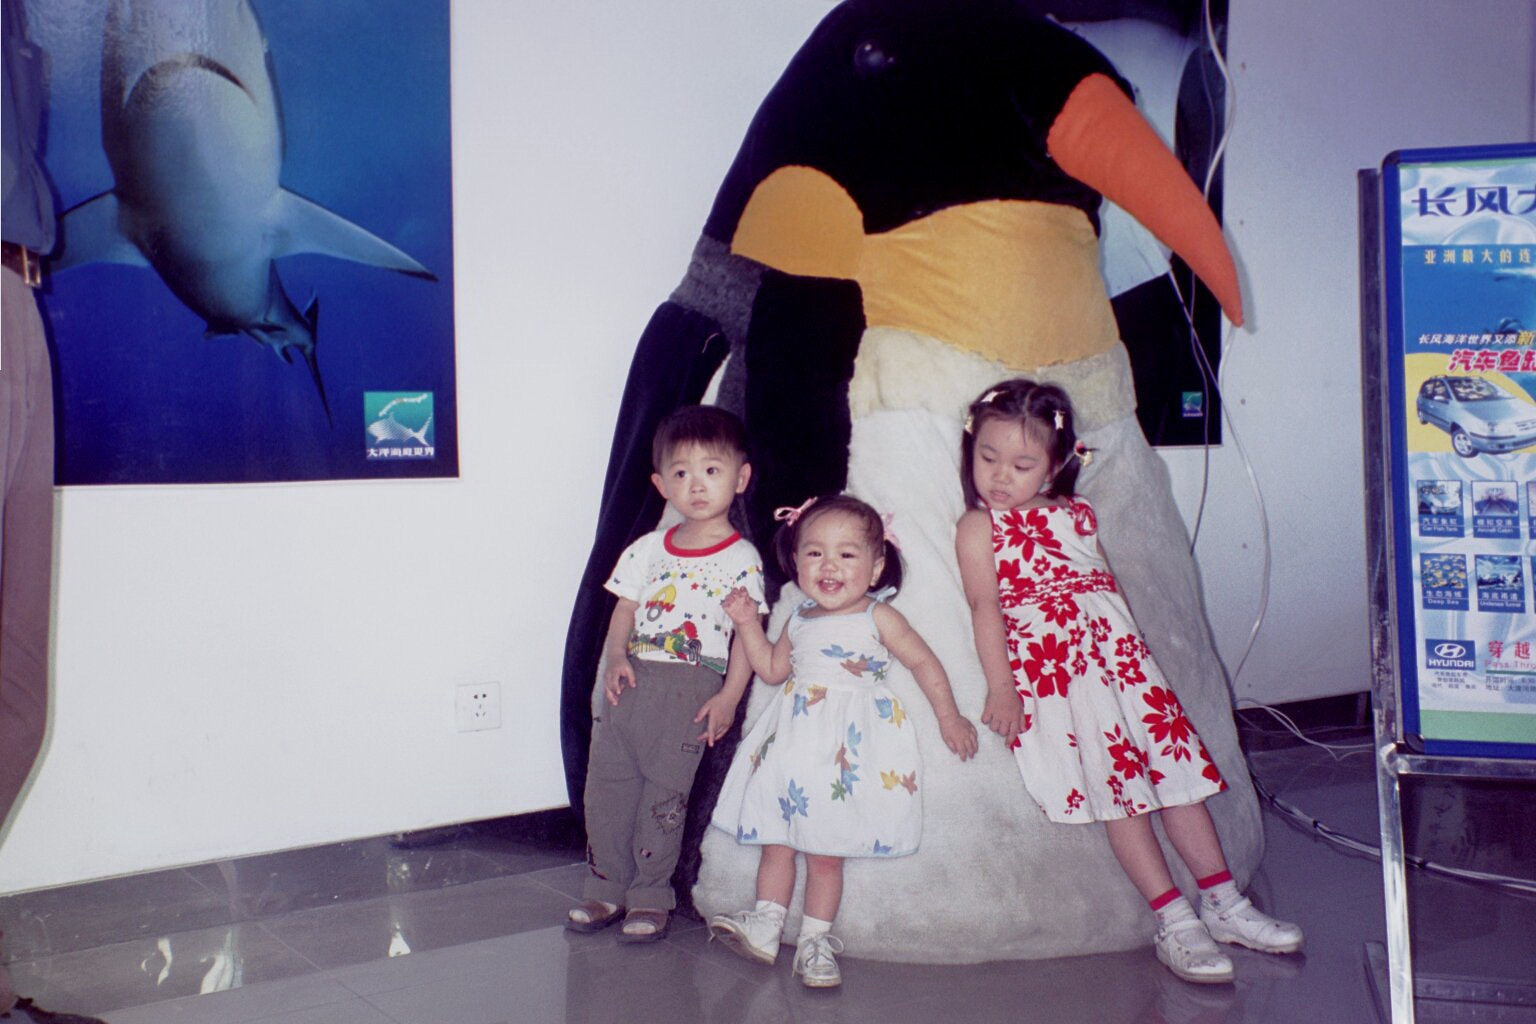 Childhood Vanessa Hu with two other family members leaning on large stuffed animal penguin